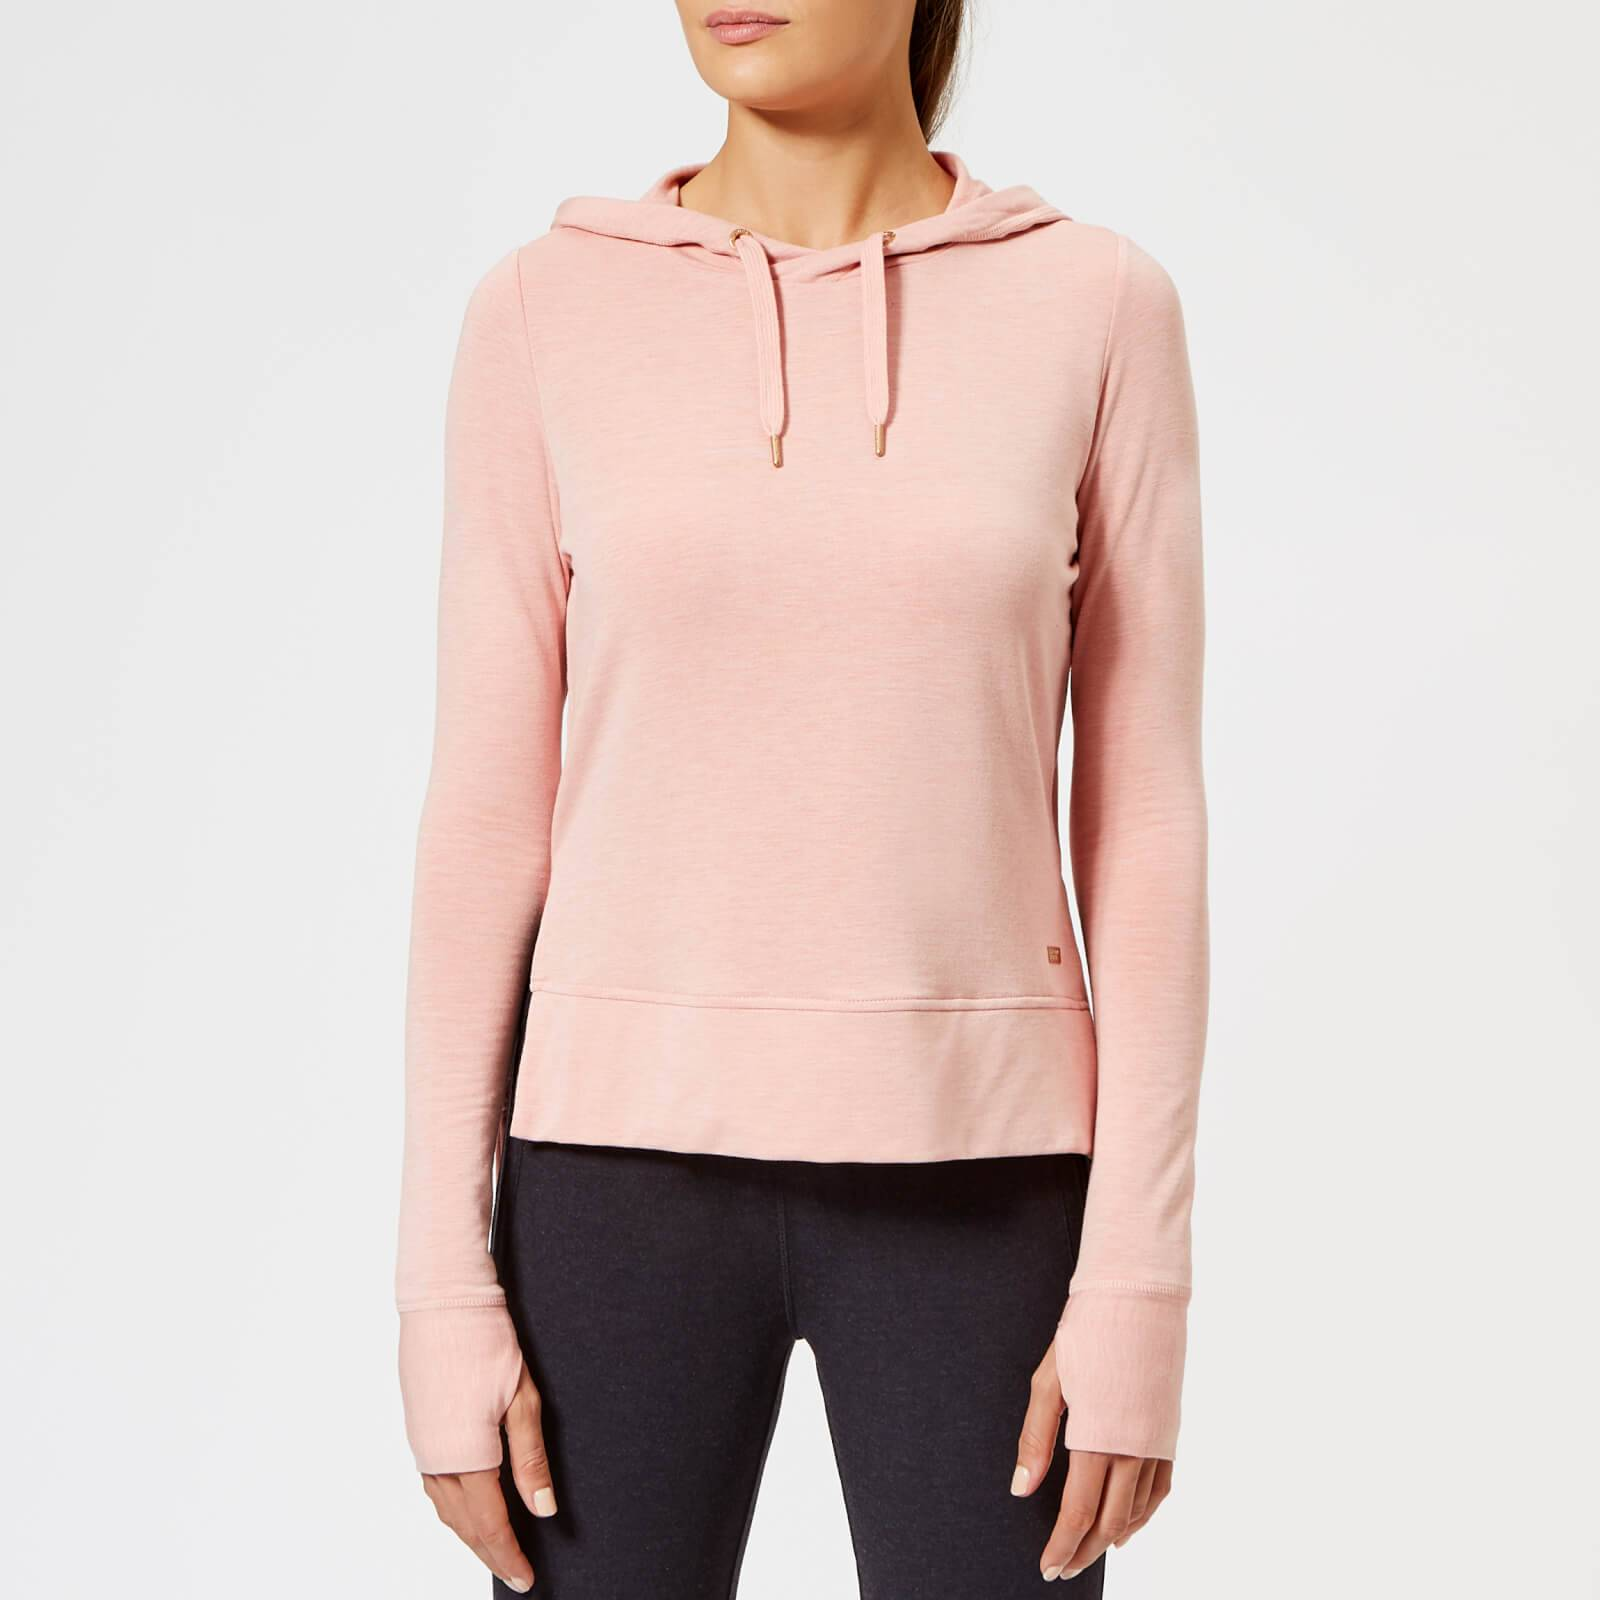 Superdry Sport Women's Active Studio Luxe Hoodie - Dusk Pink - UK 14 - Pink